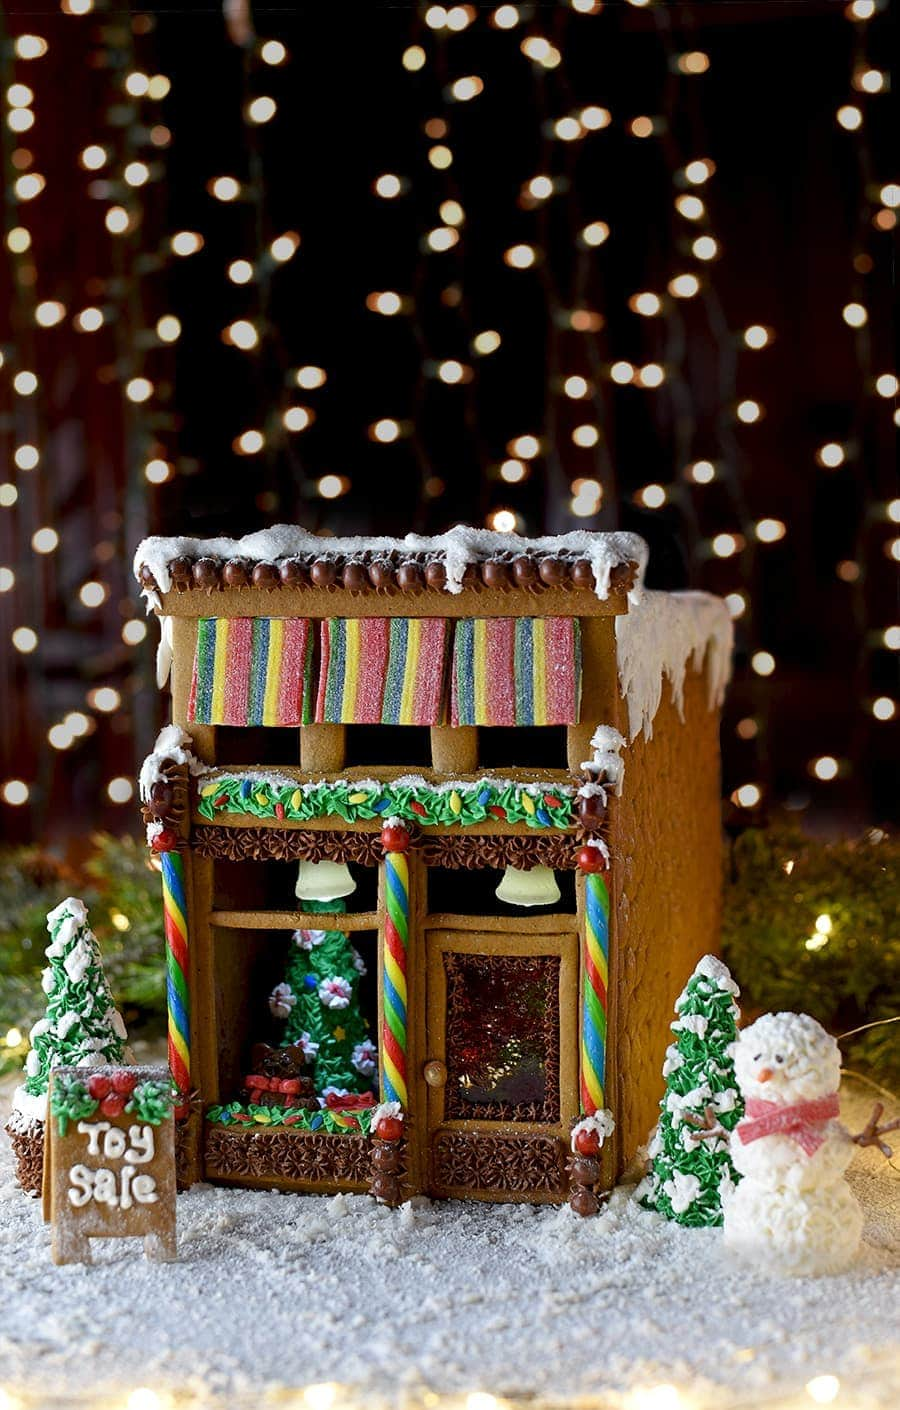 Superb F Our Victorian Storefront Gingerbread House Brings Magic A Historicdowntown To Your Victorian Storefront Gingerbread House Template Vintage Kitty decor Gingerbread House Decorations